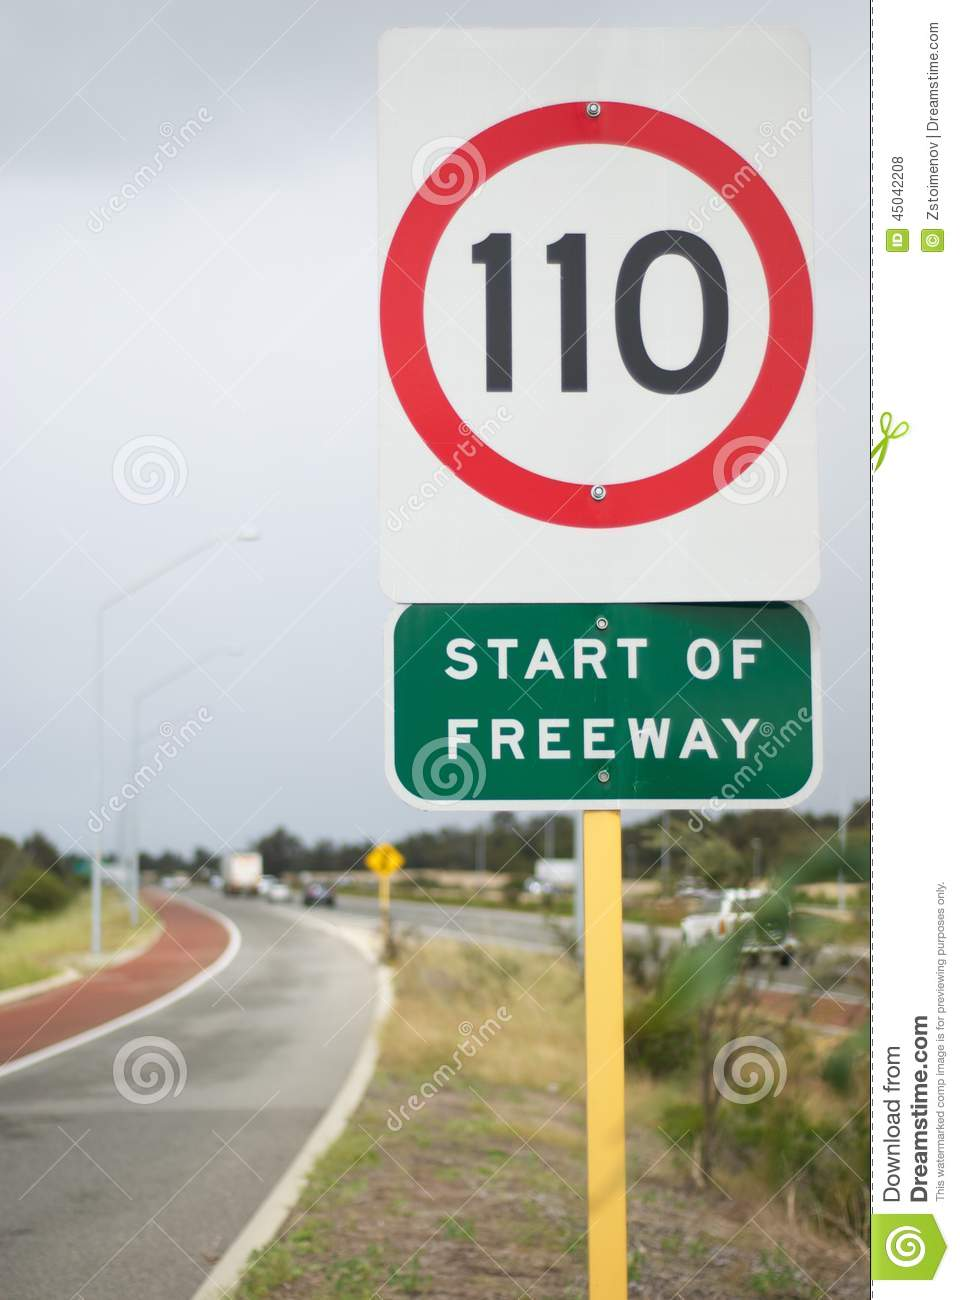 Speed Limit Sign On Highway Stock Photo - Image of kwinana